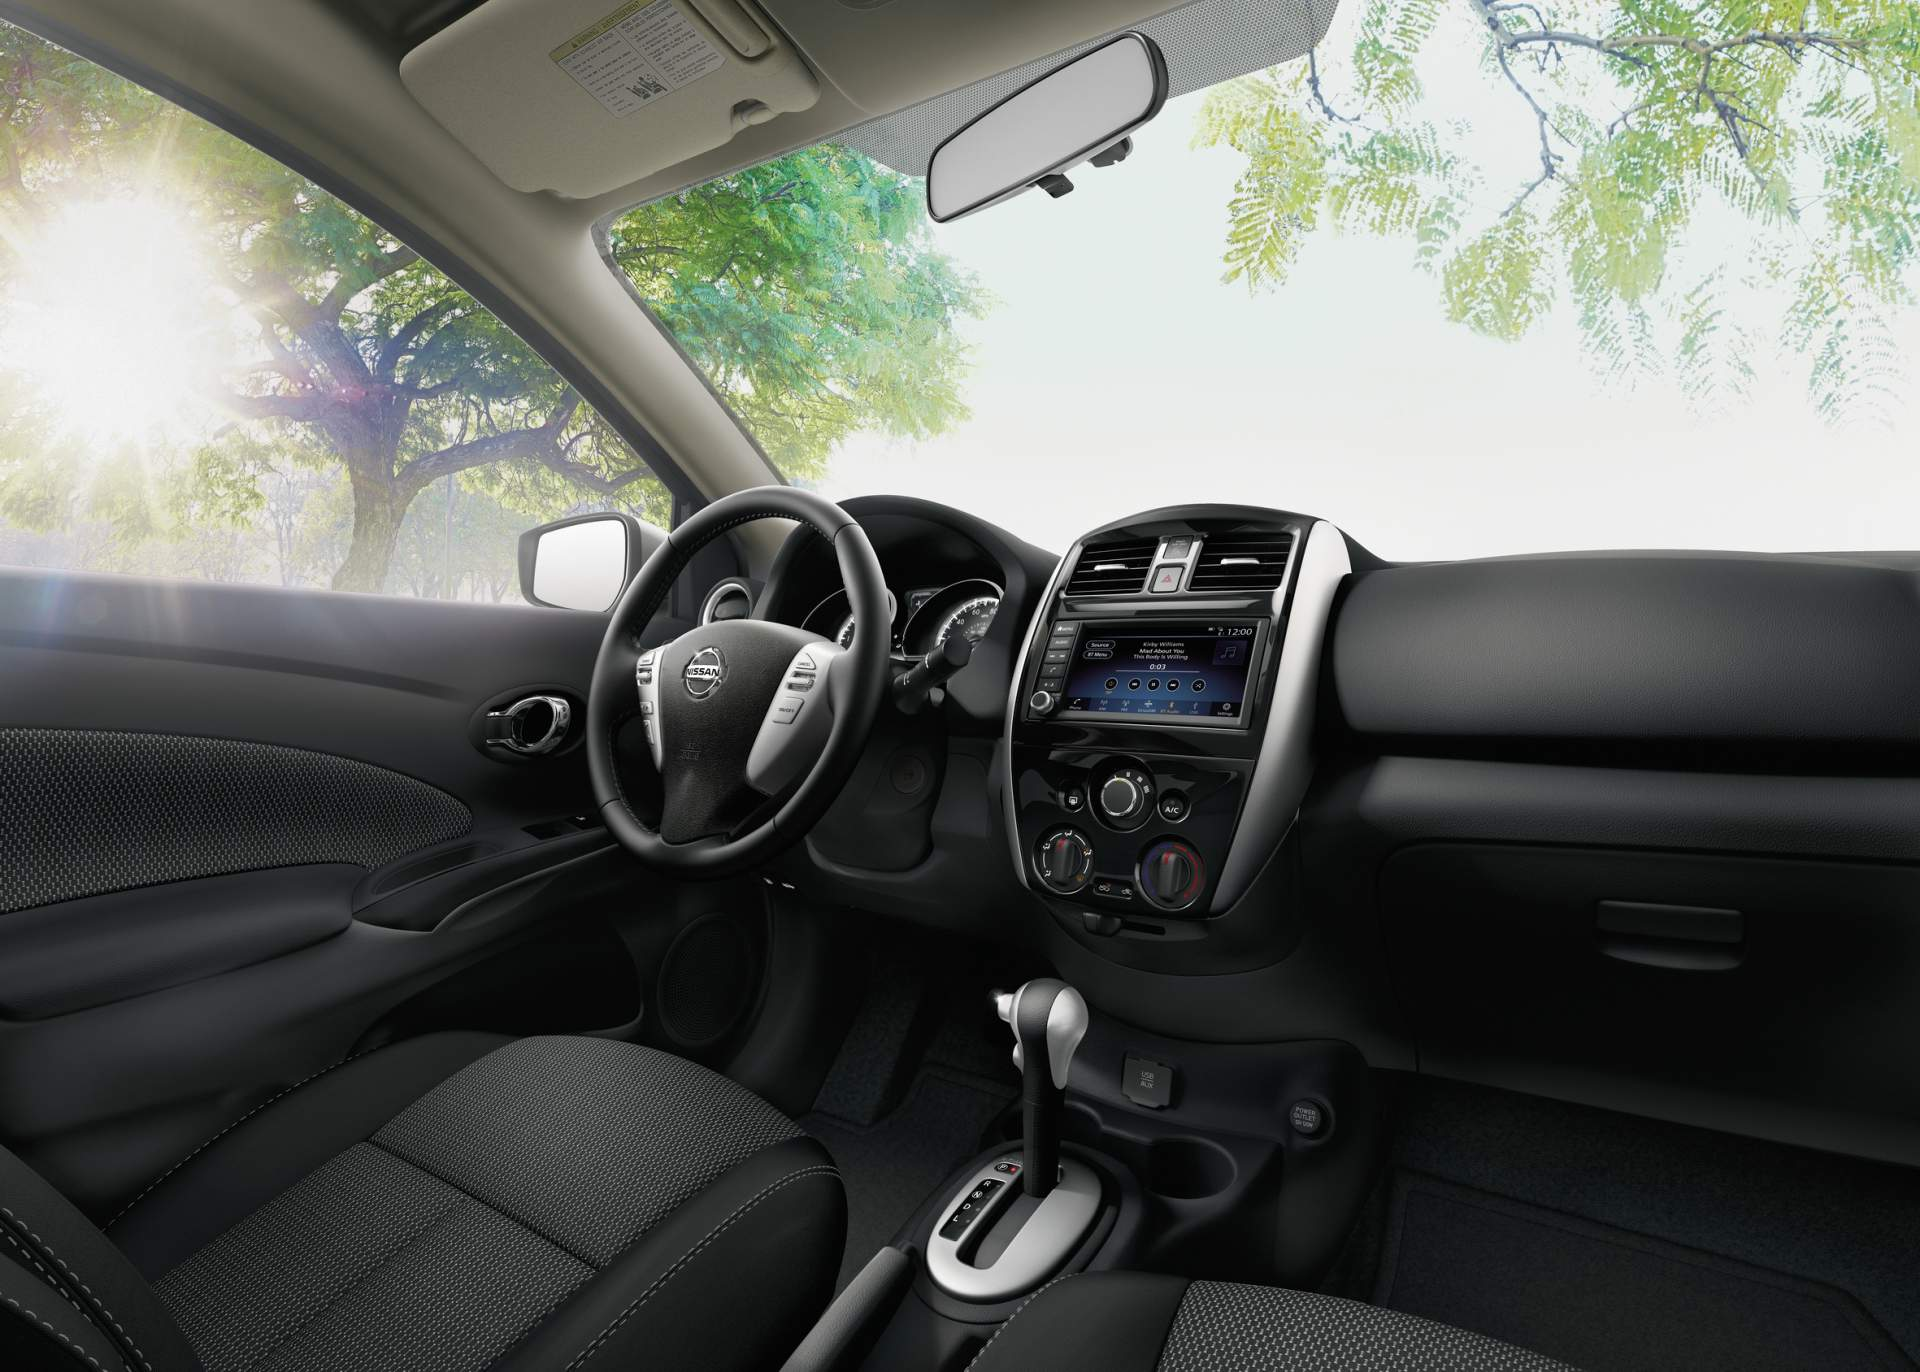 2019 nissan versa note priced from 15 650 autoevolution for Nissan versa note interior dimensions